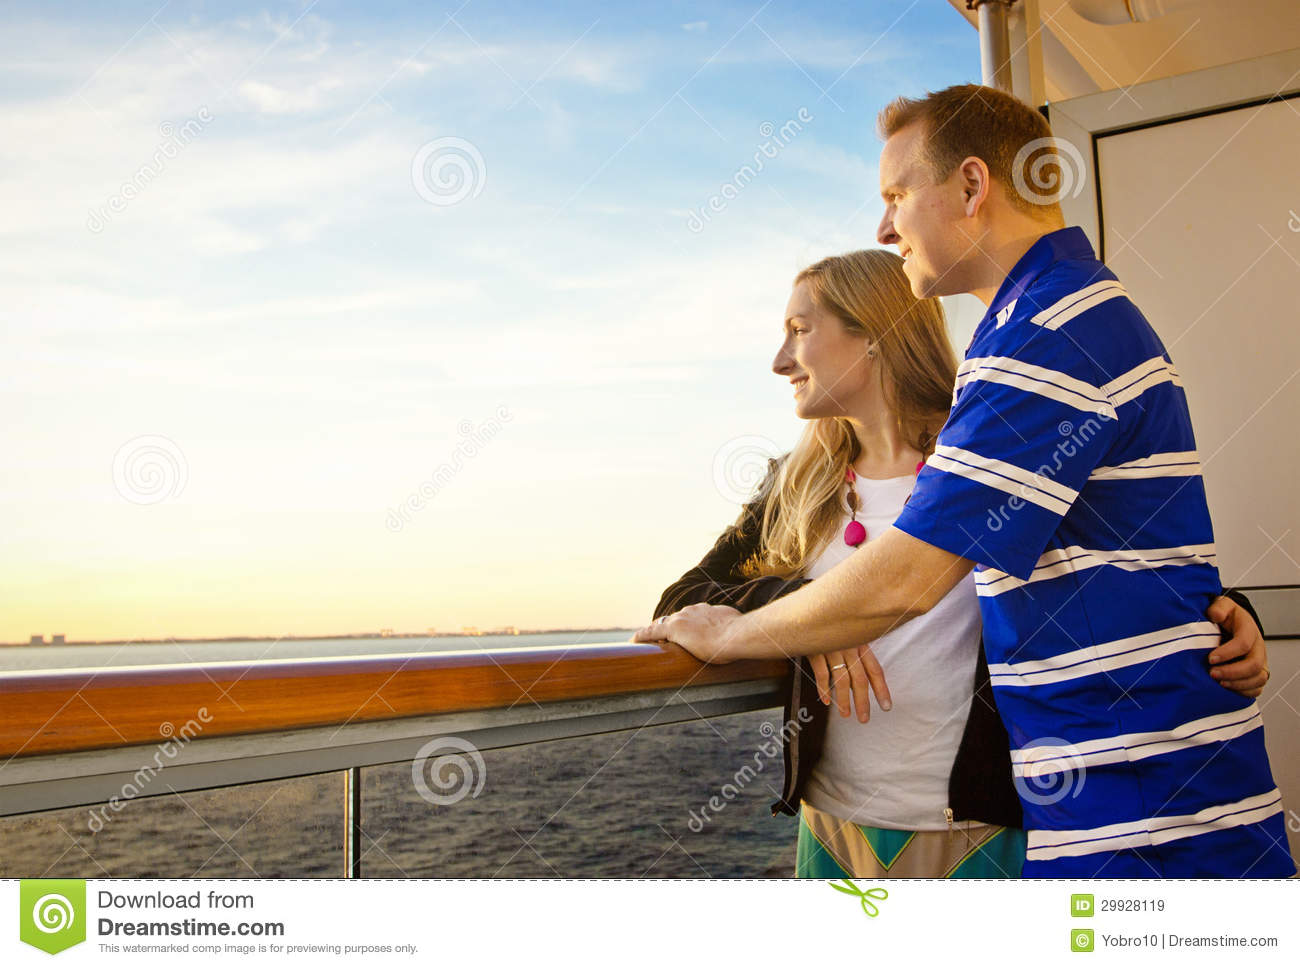 Best Cruise Lines For Couples 2019 - Cruiseline.com